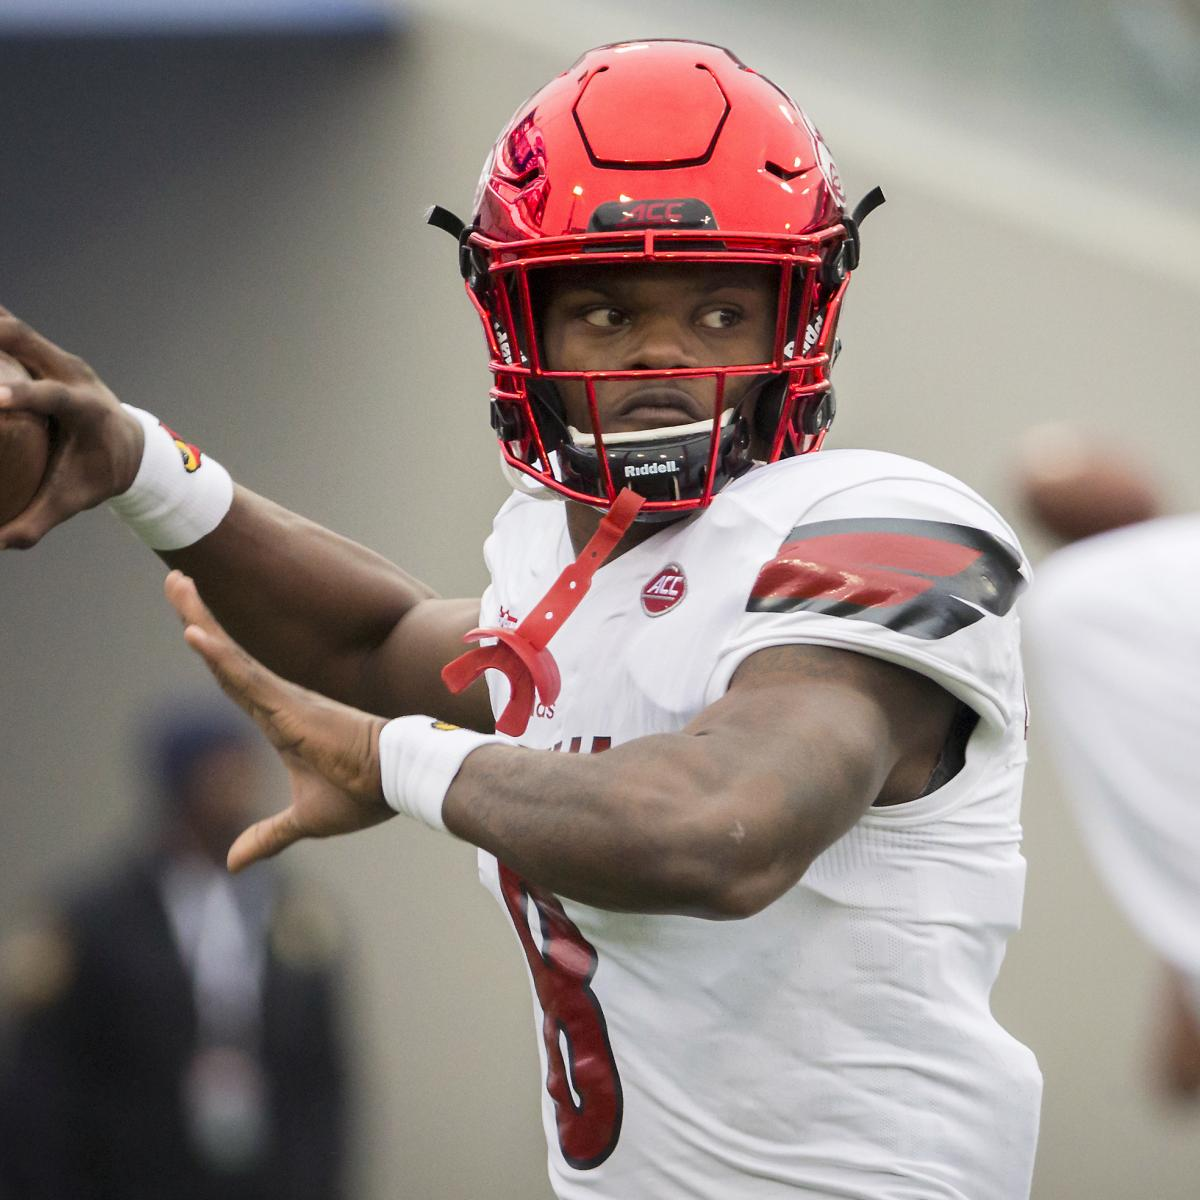 Lamar Jackson opted out of 40-yard dash at NFL Combine due